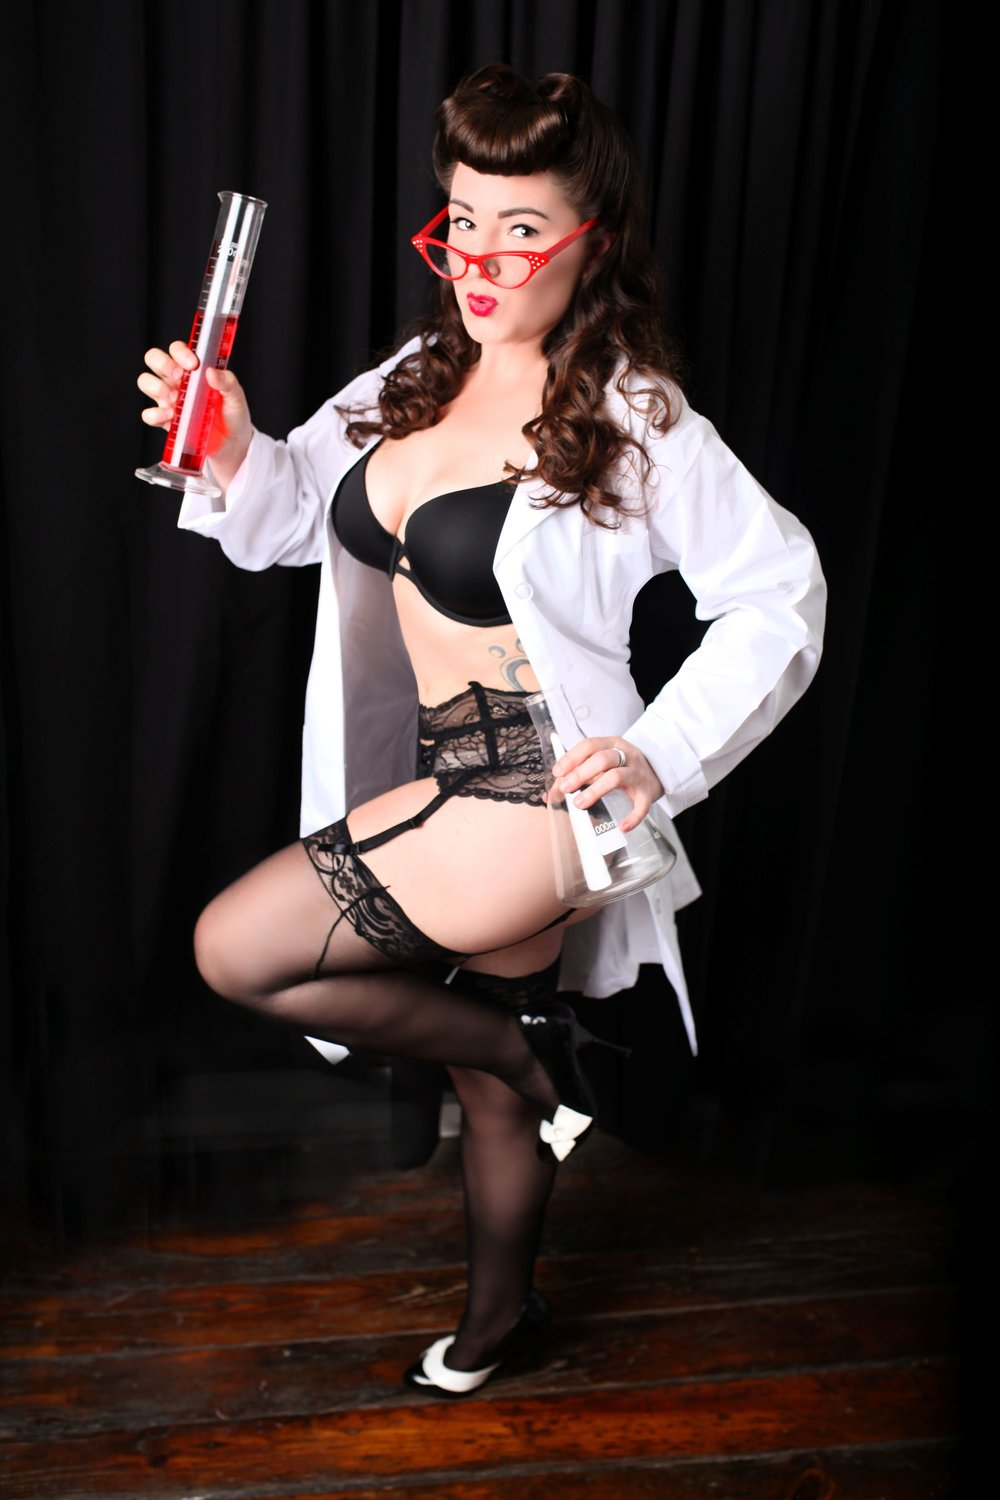 Chicago-Pinup-Photographer-Test-Tubes-Lab-Coats-and-Experiments